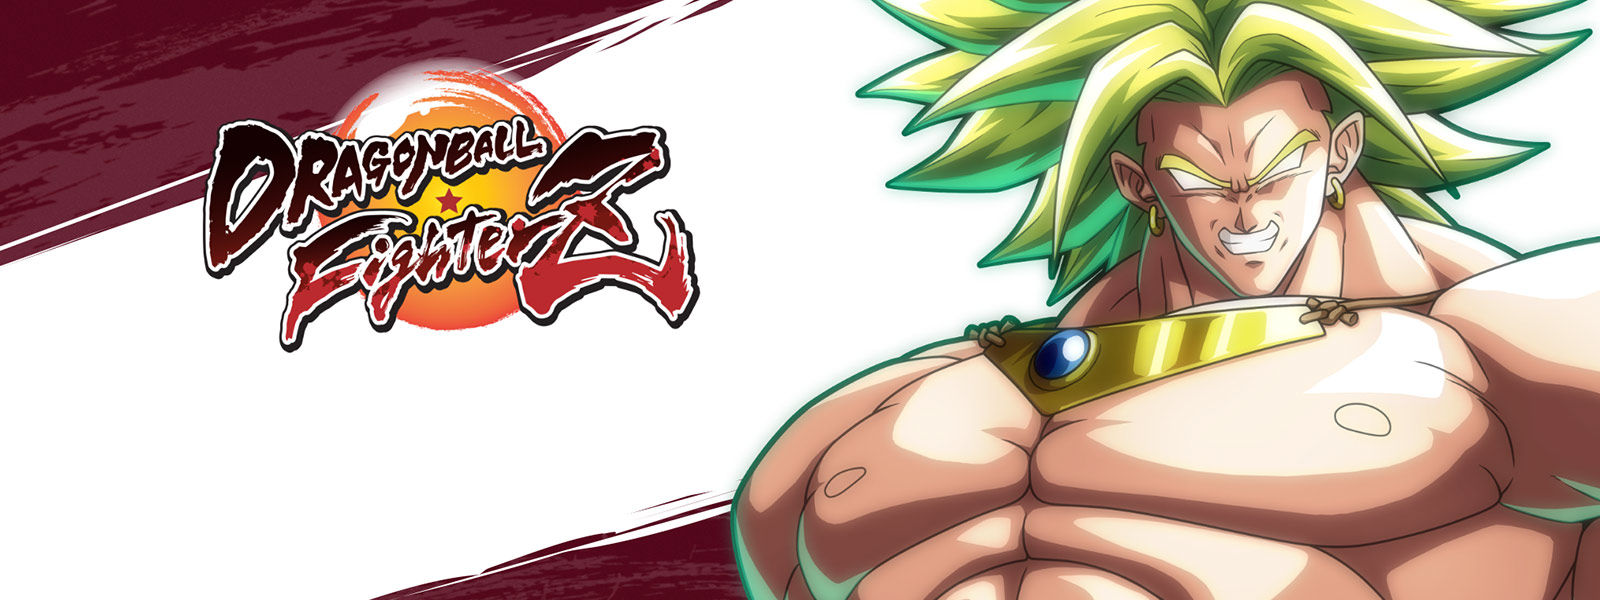 Dragon Ball FighterZ, vista frontal de Broly y su pecho grande